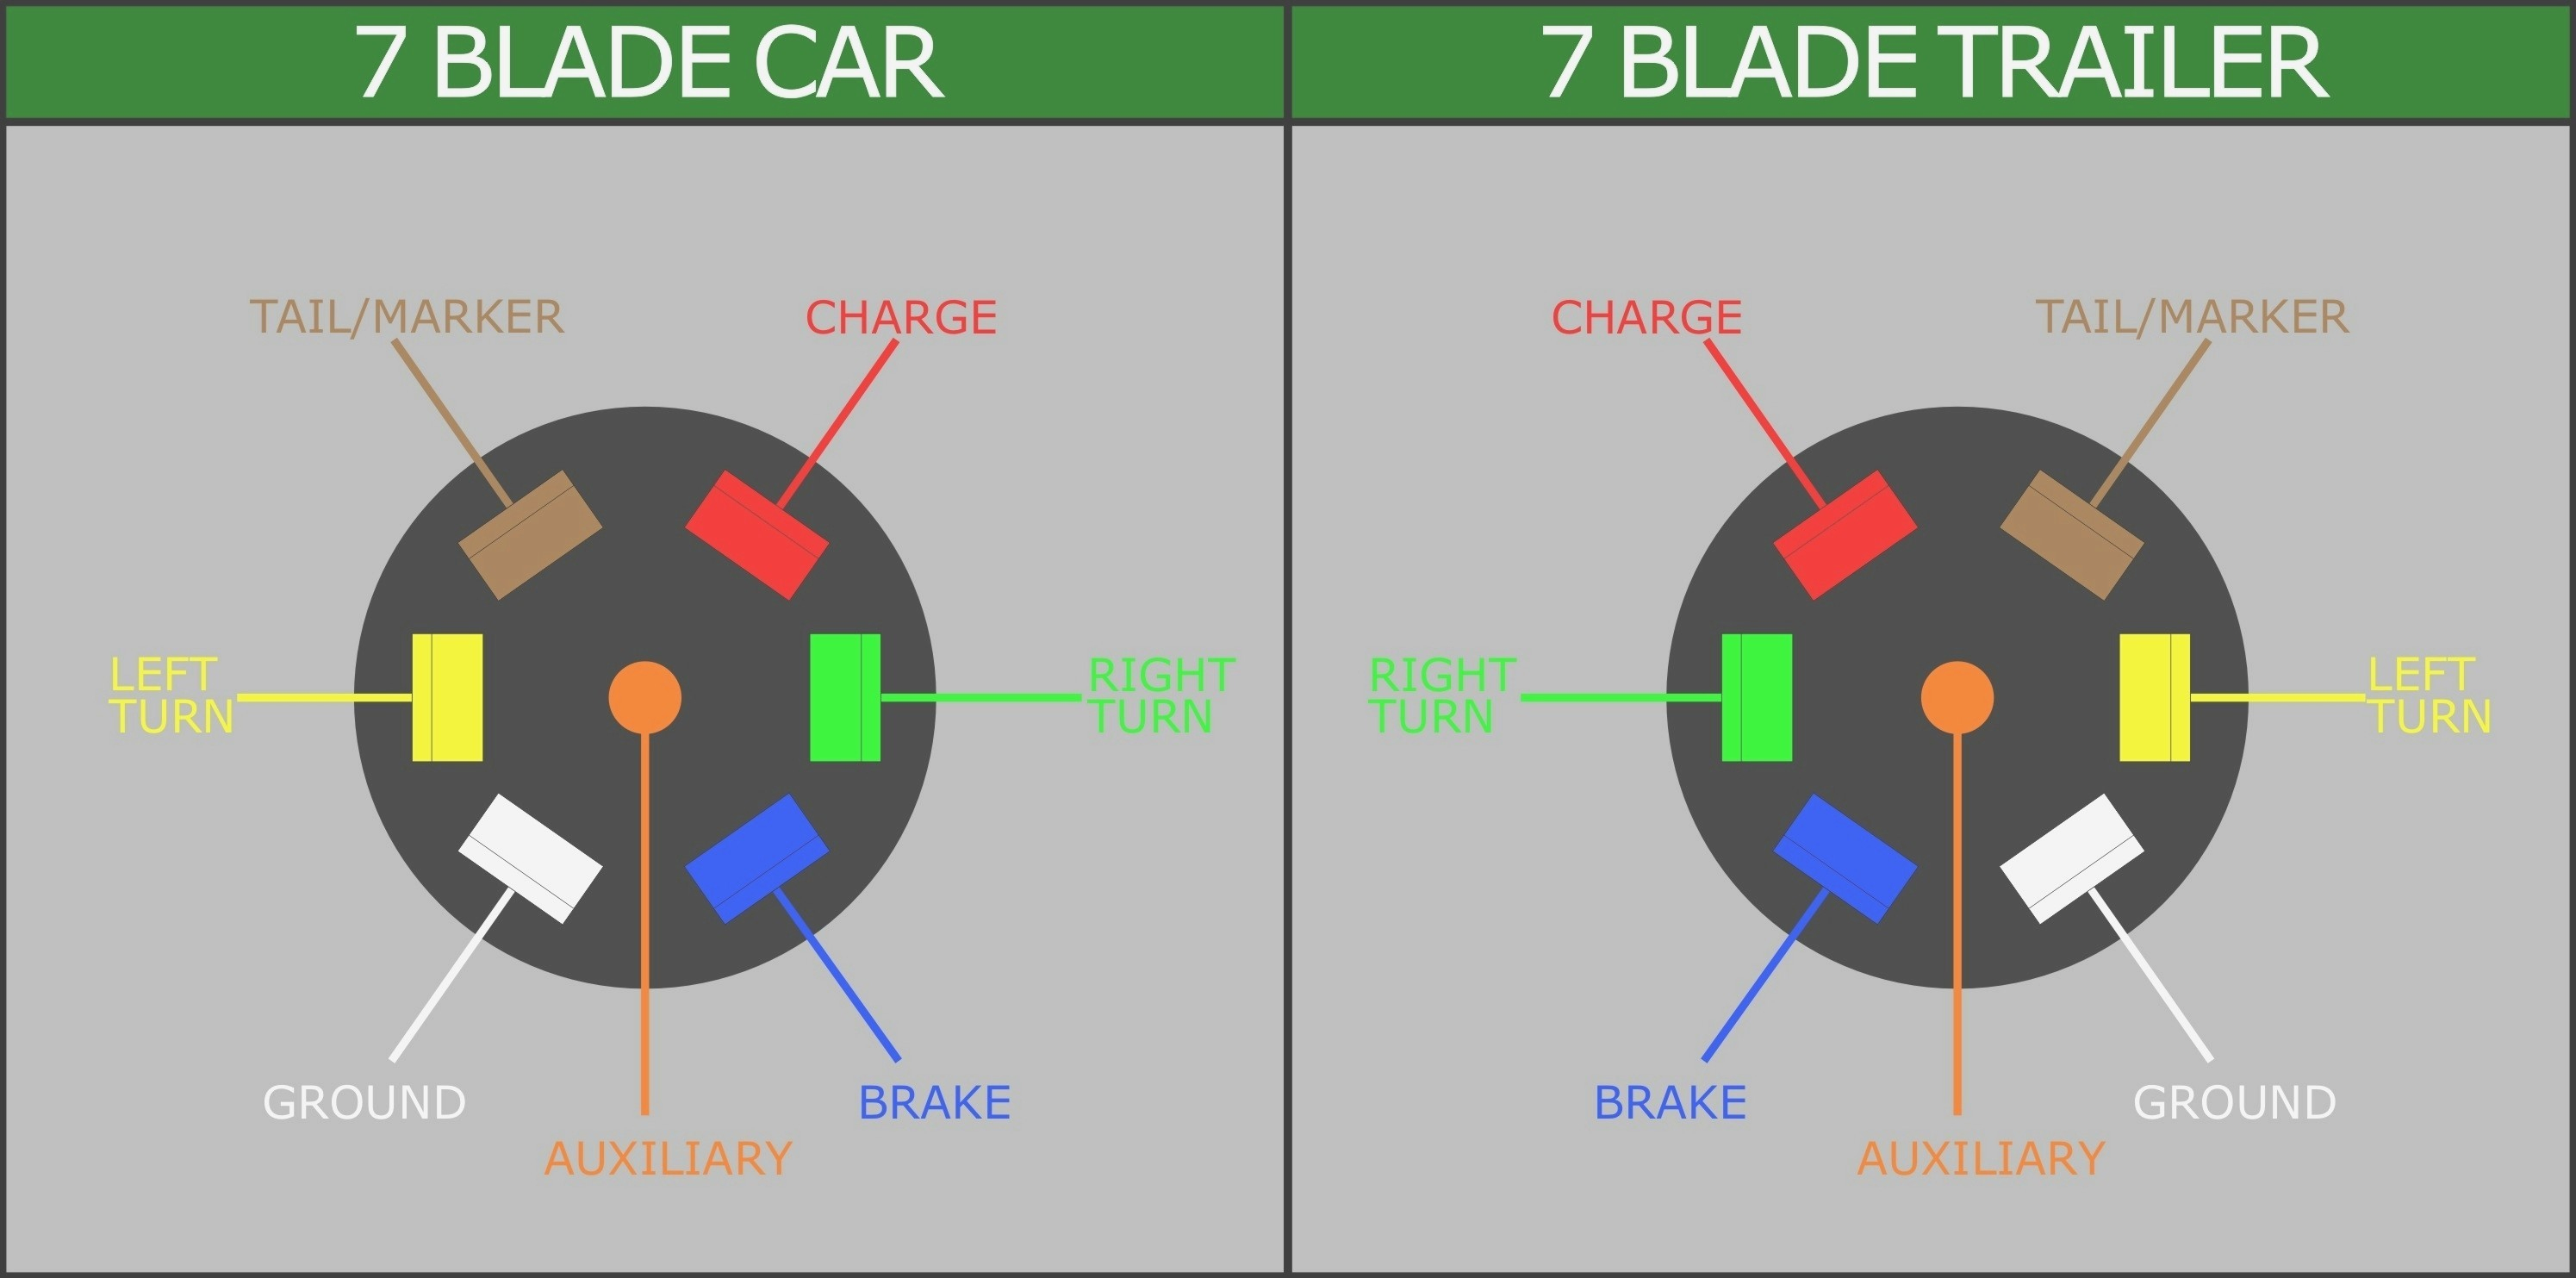 7 Blade Trailer Wiring Diagram Wire Color - Wiring Diagrams Thumbs - Typical Trailer Wiring Diagram